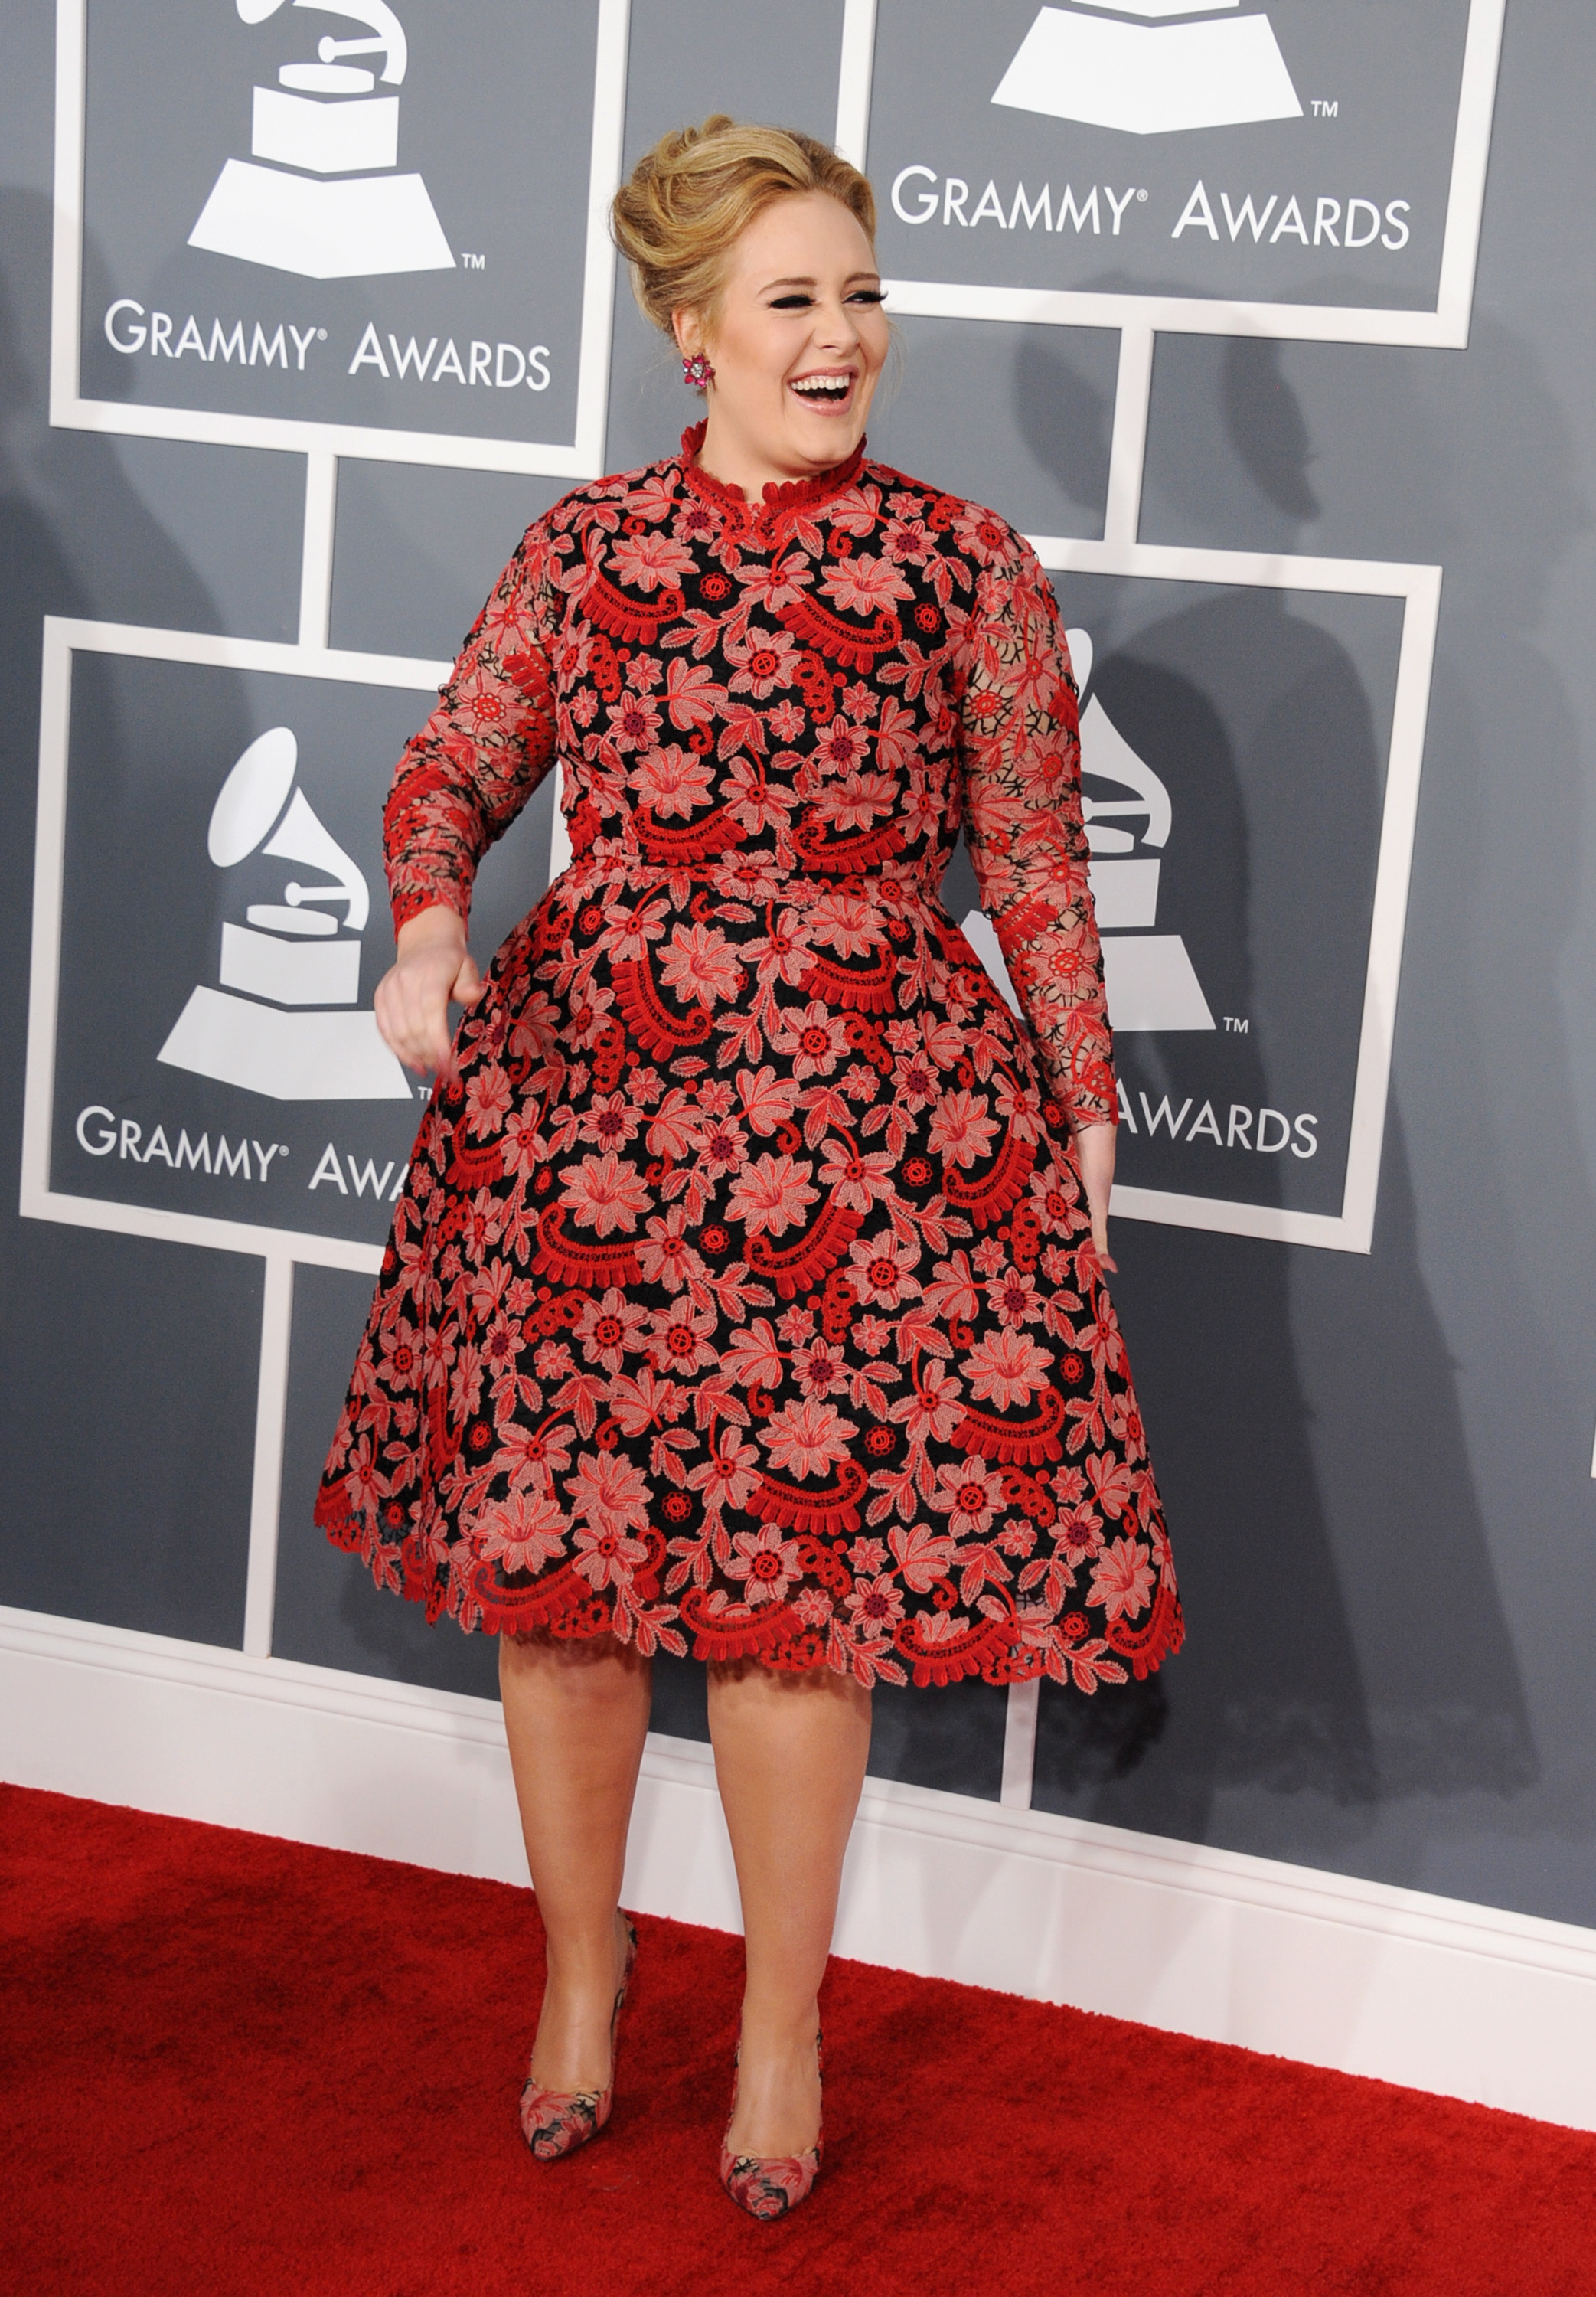 Adele had fun walking the Grammys red carpet.